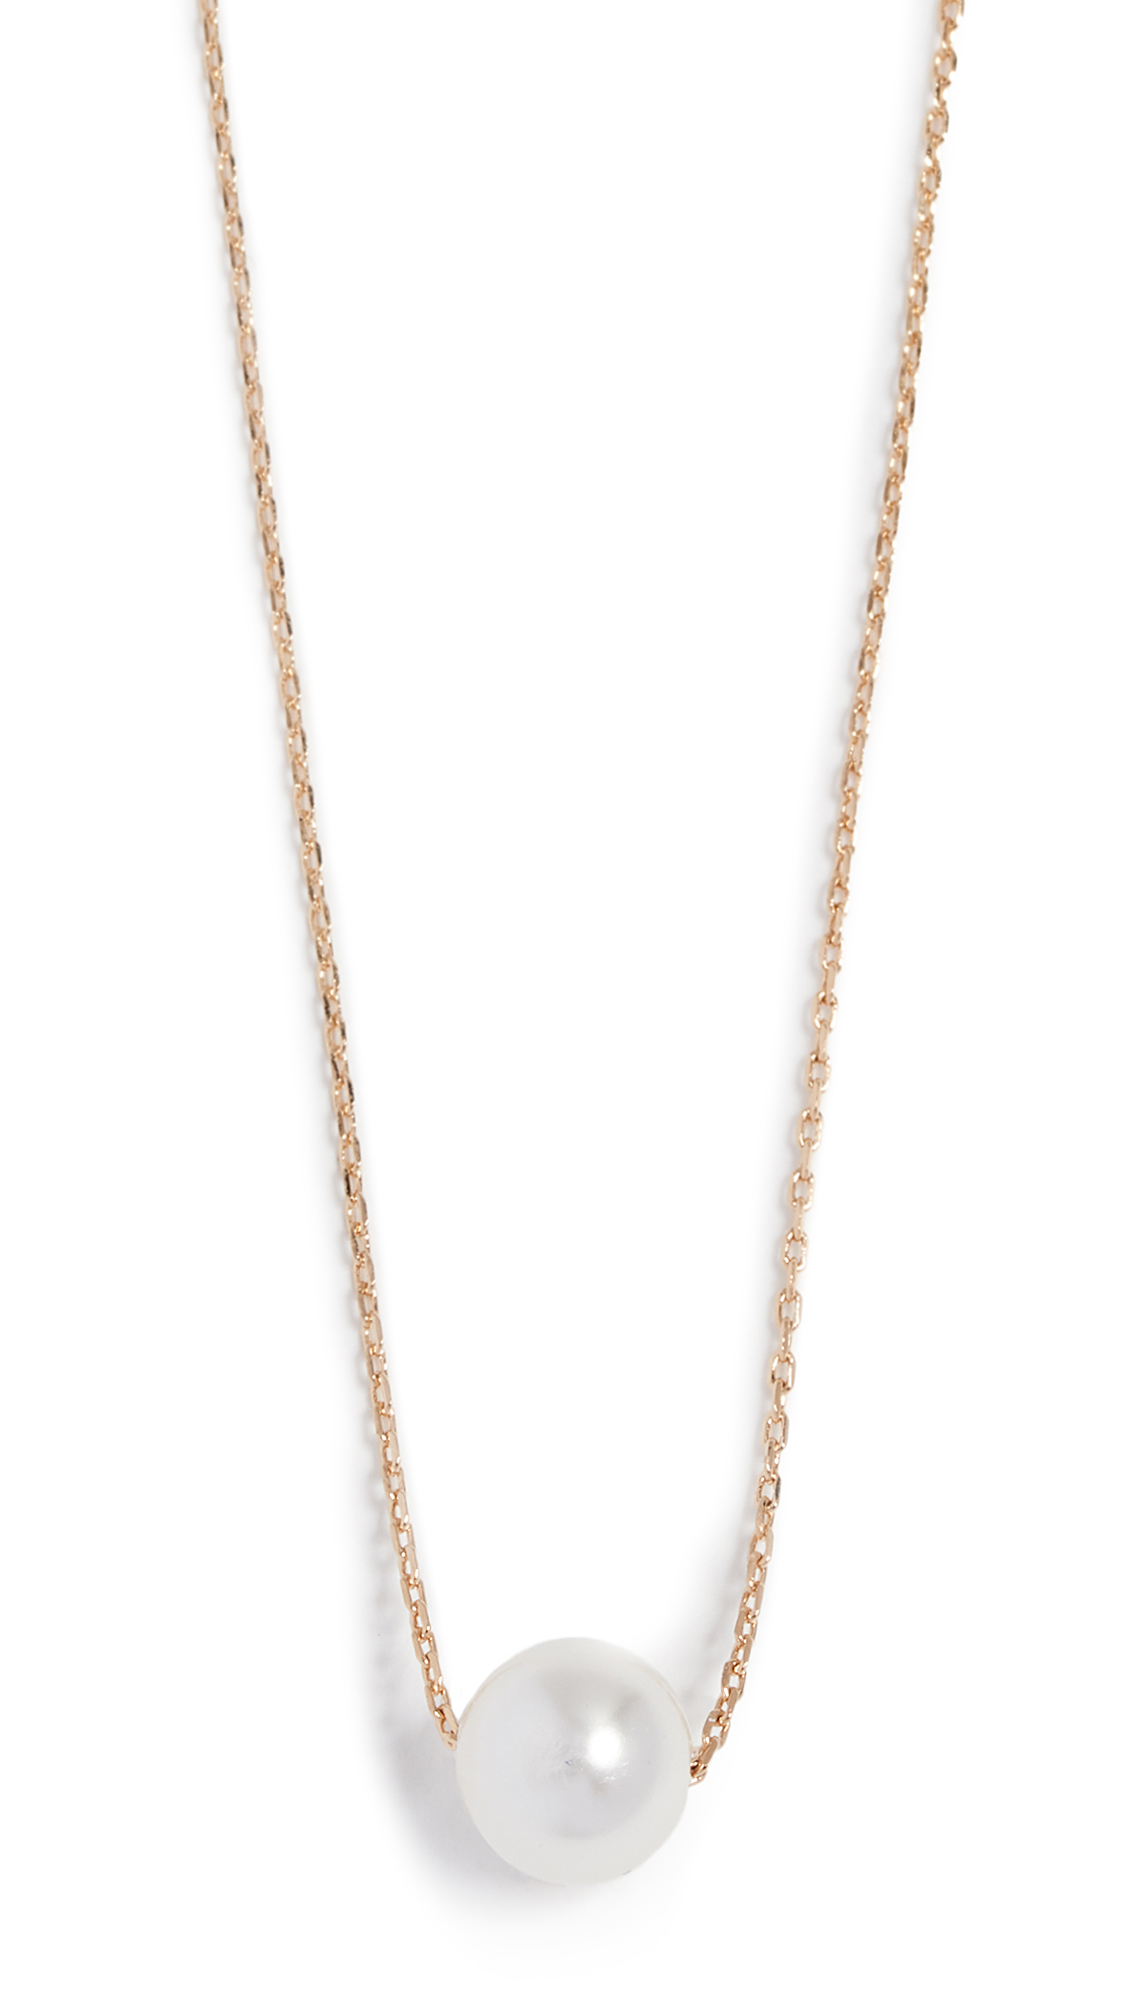 Theia Jewelry Petite Swarovski Imitation Pearl Necklace - Yellow Gold